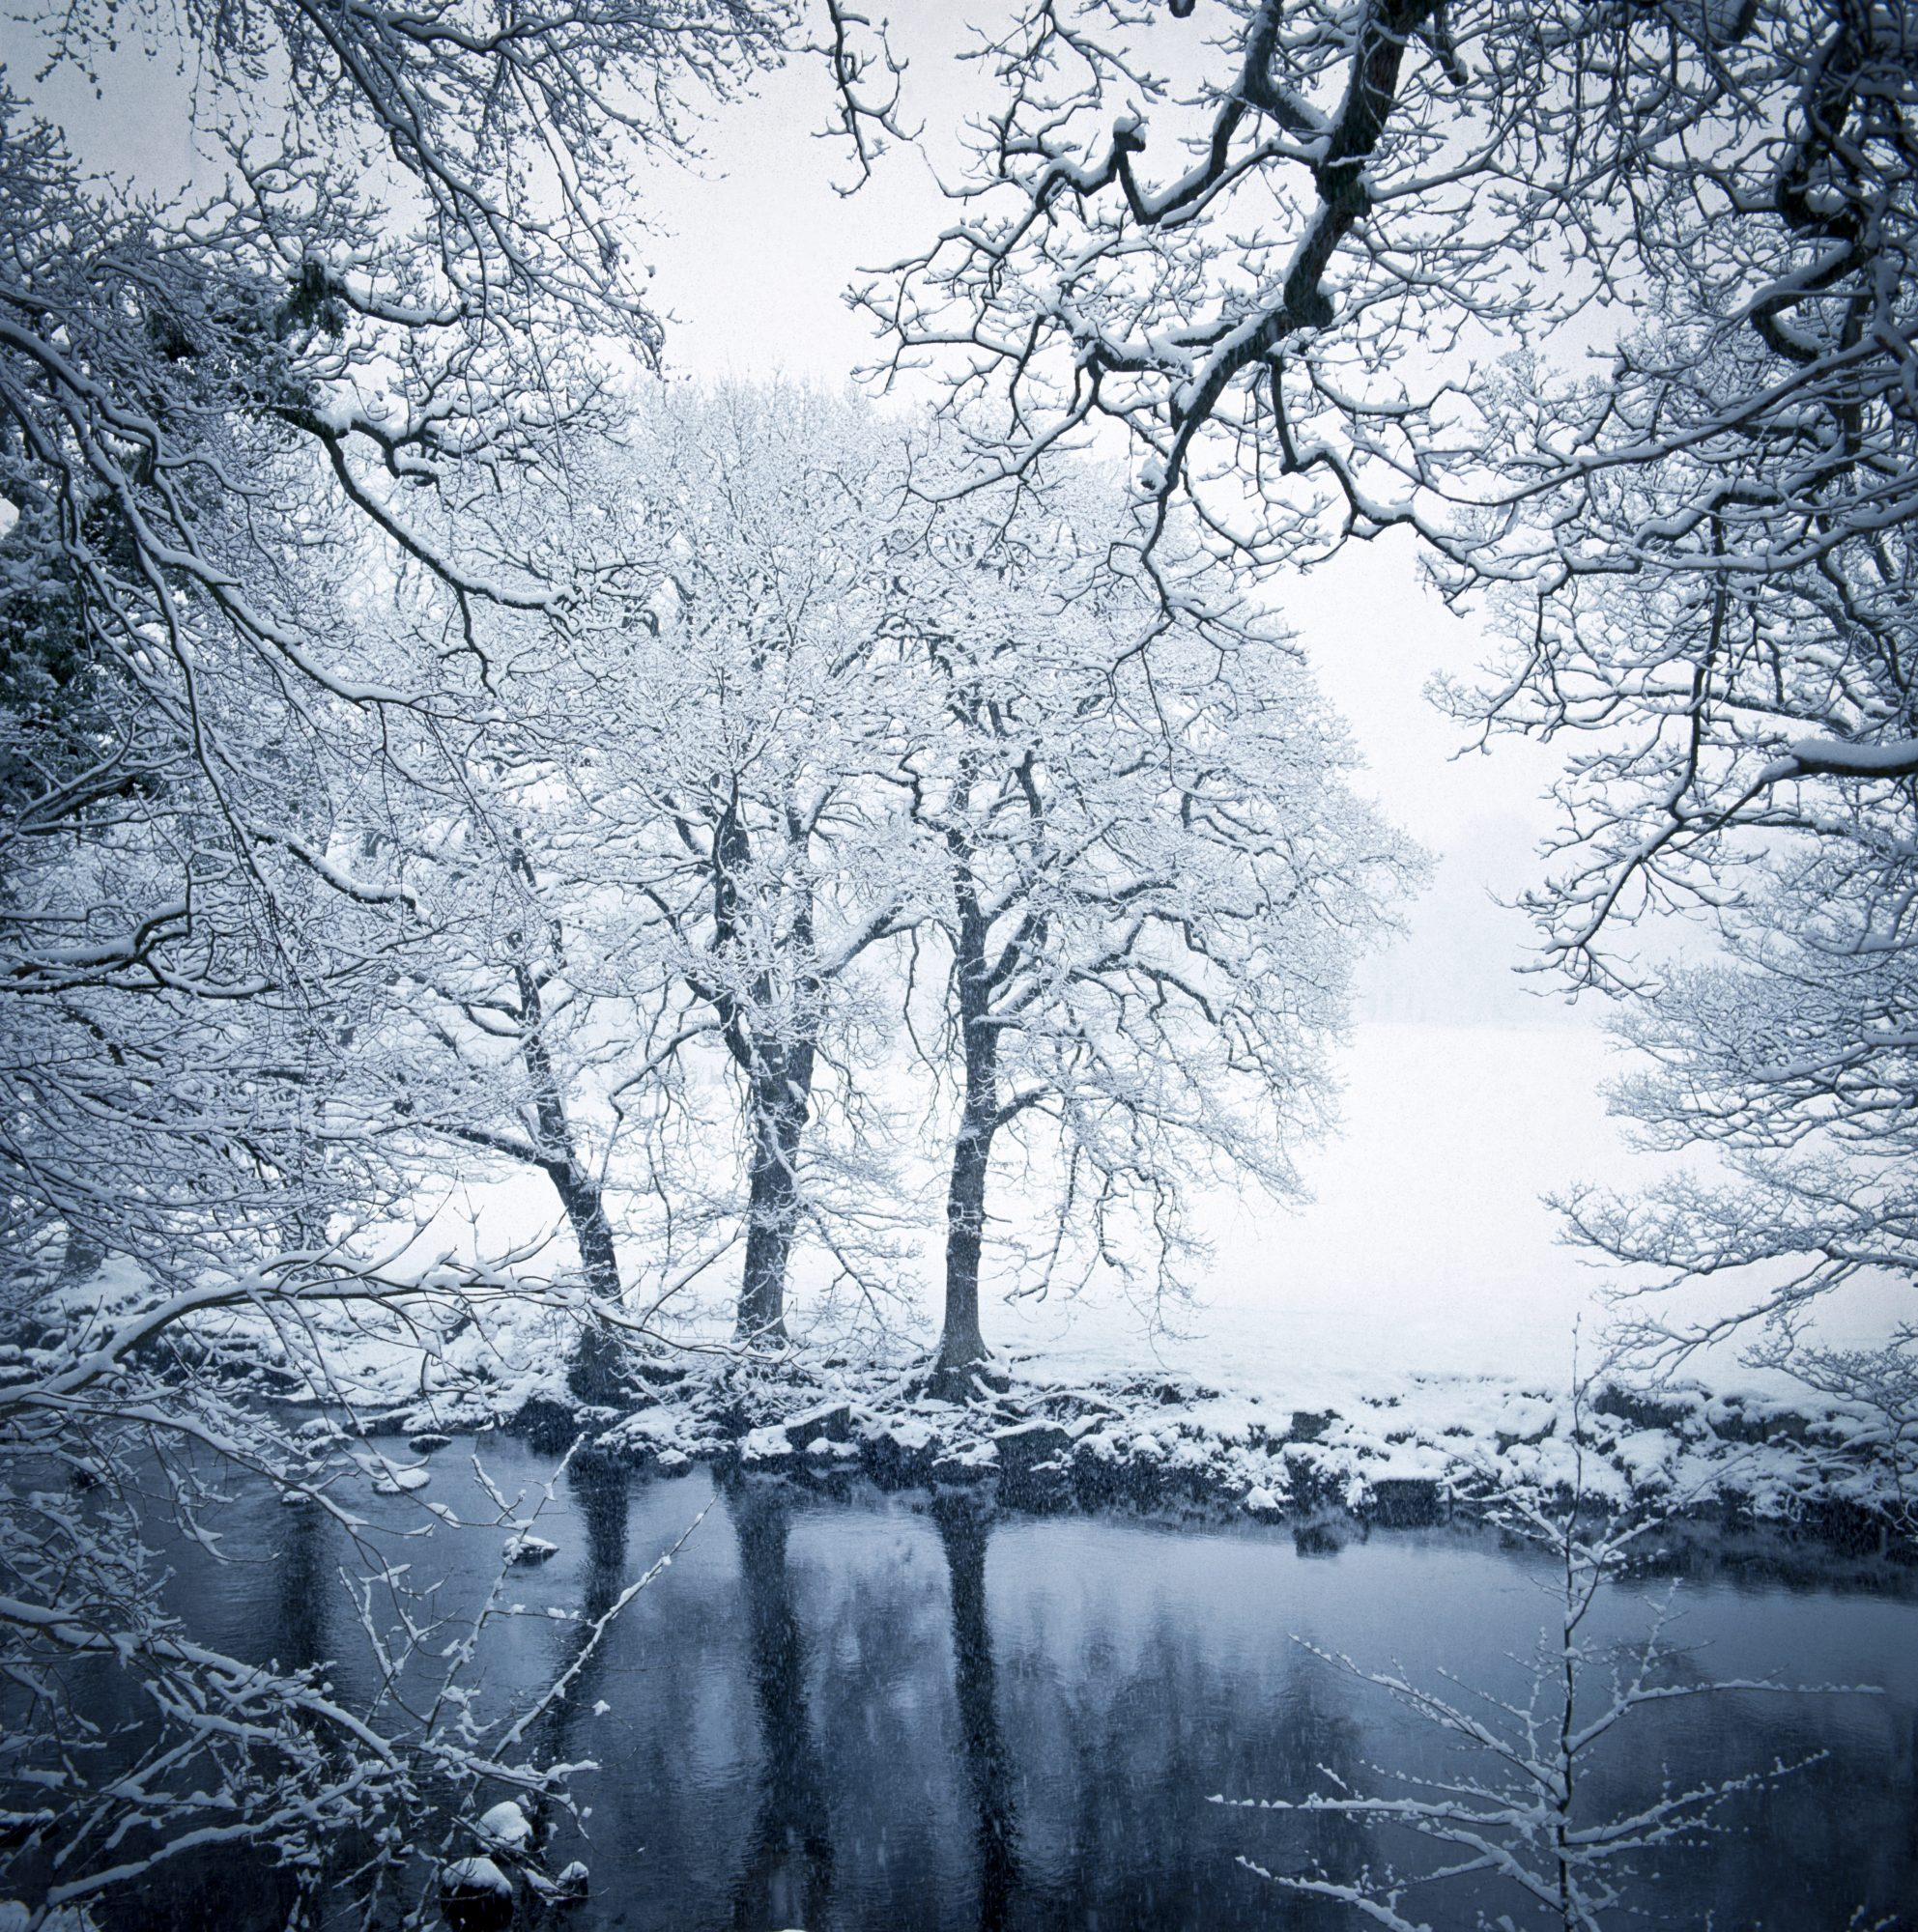 Snow-covered trees along a creek